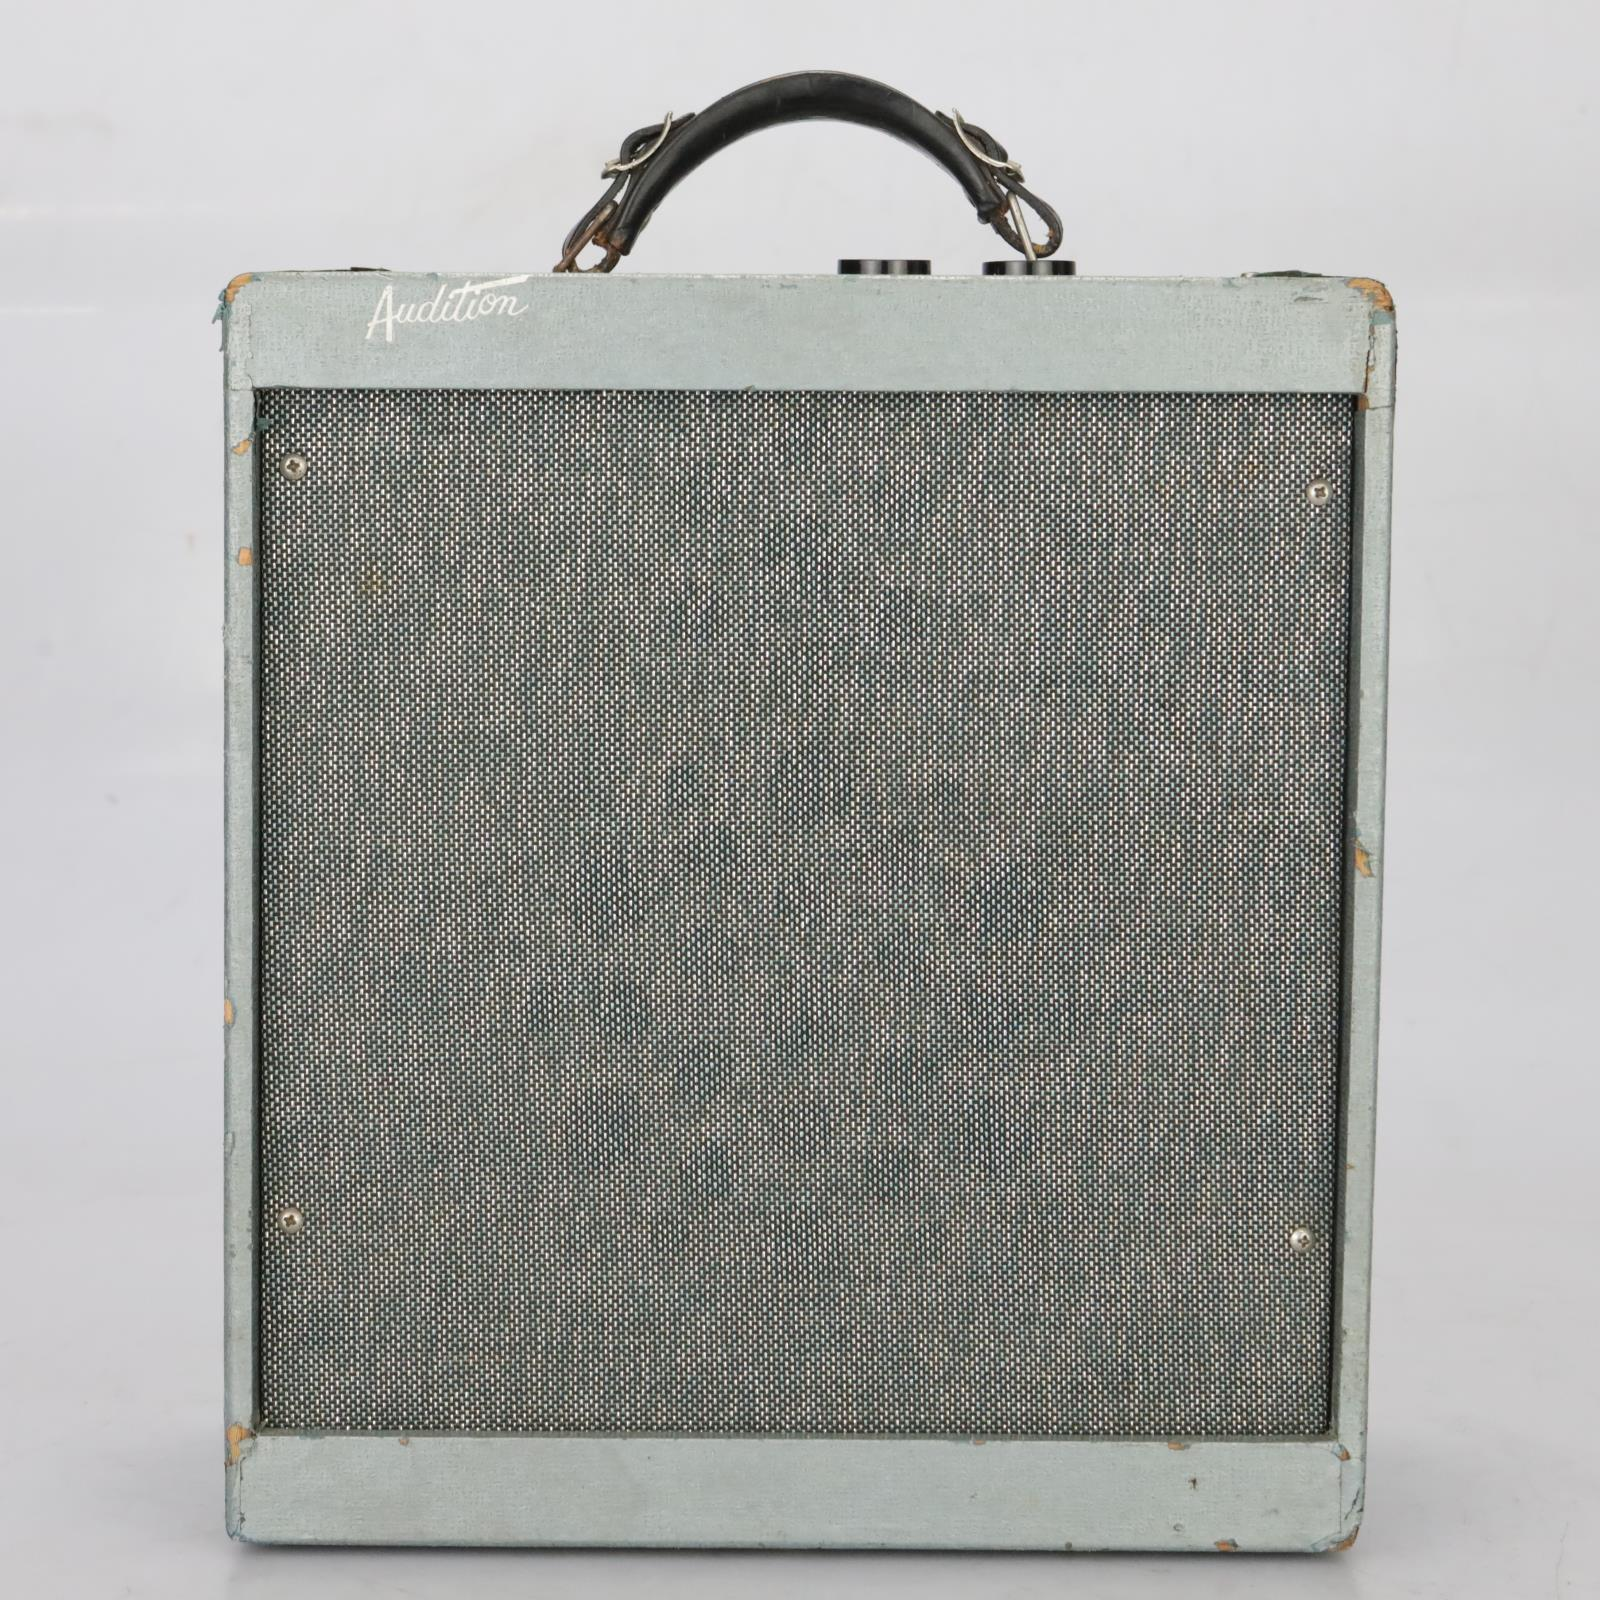 Teisco Audition Solid State Vintage Amplifier Amp Need Service #37666